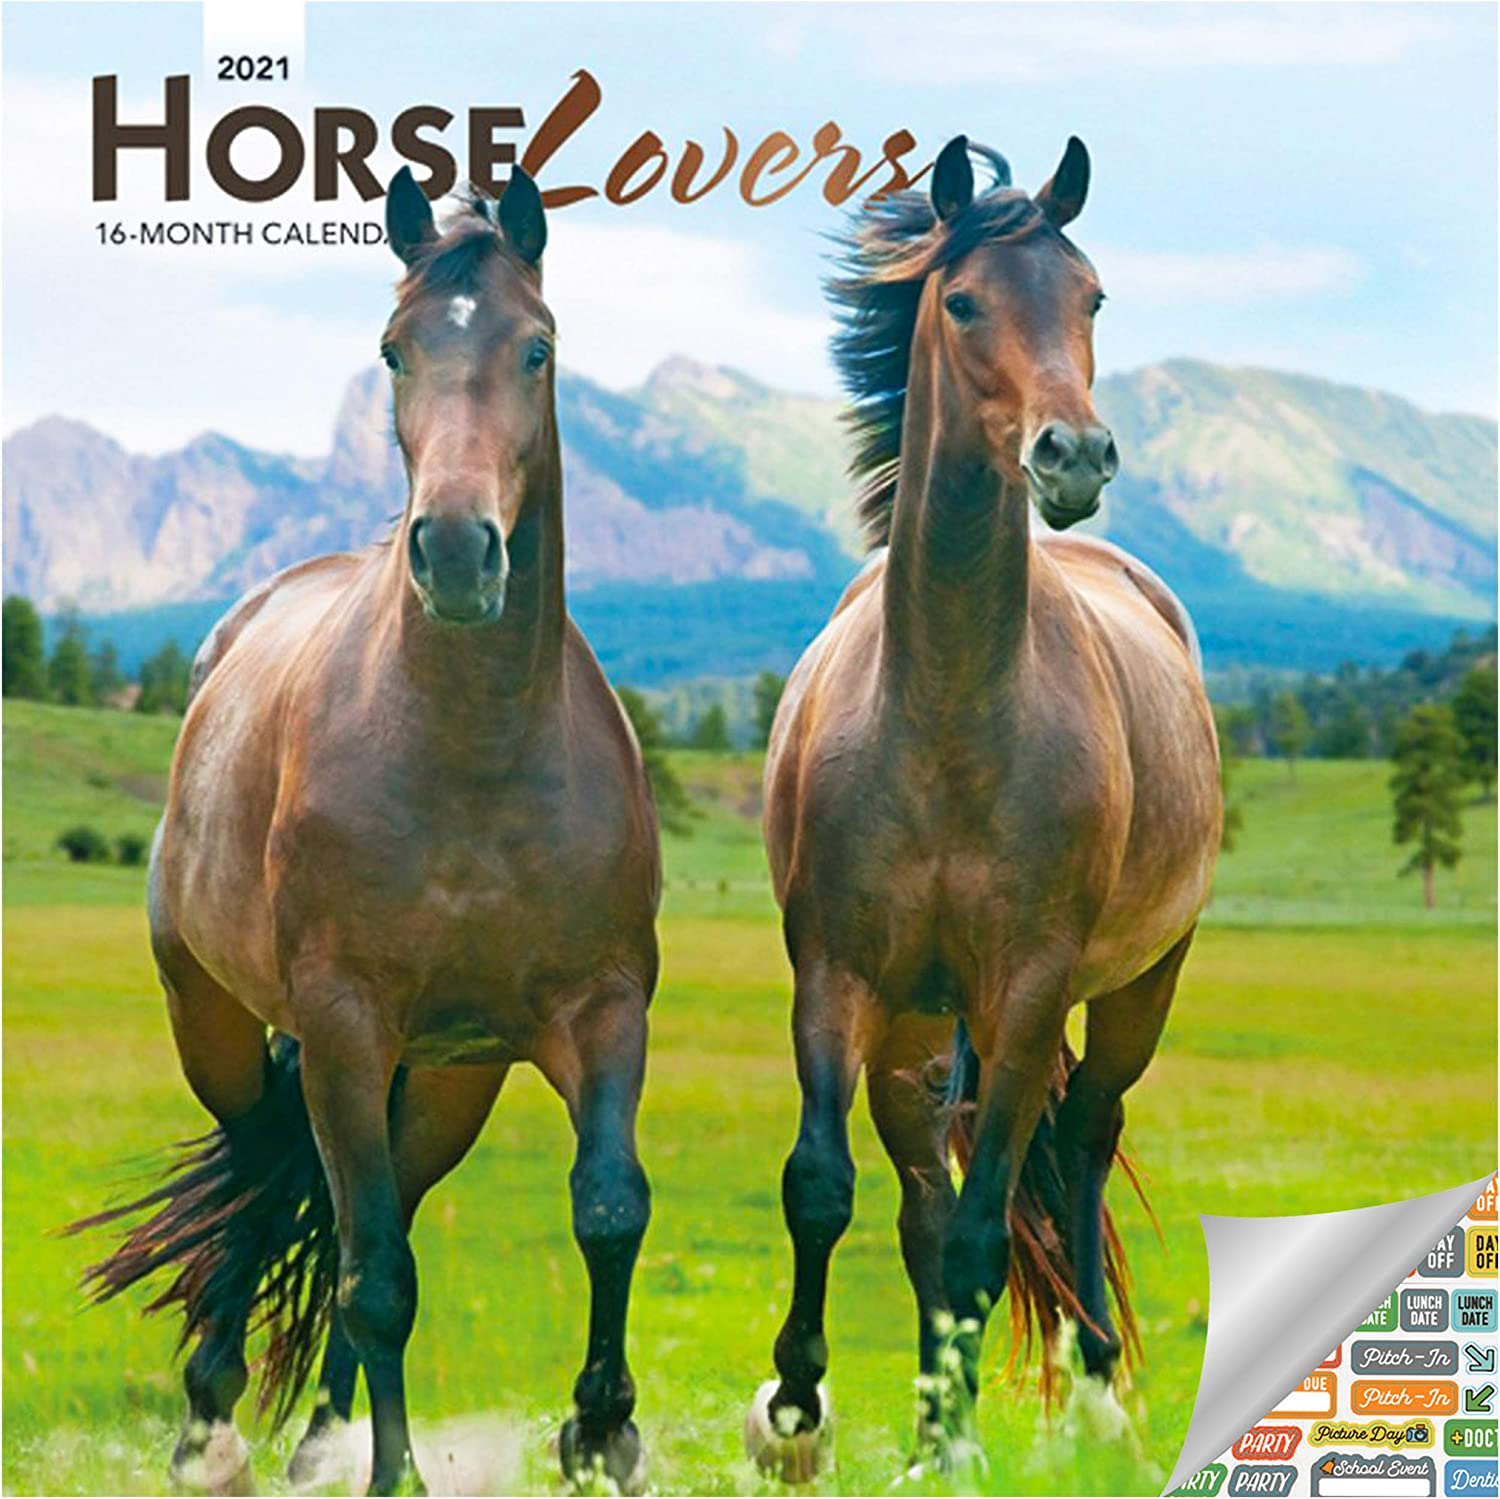 Horse Lovers Calendar 2021 Bundle - Deluxe 2021 Horses Mini Calendar with Over 100 Calendar Stickers (Horse Gifts, Office Supplies)